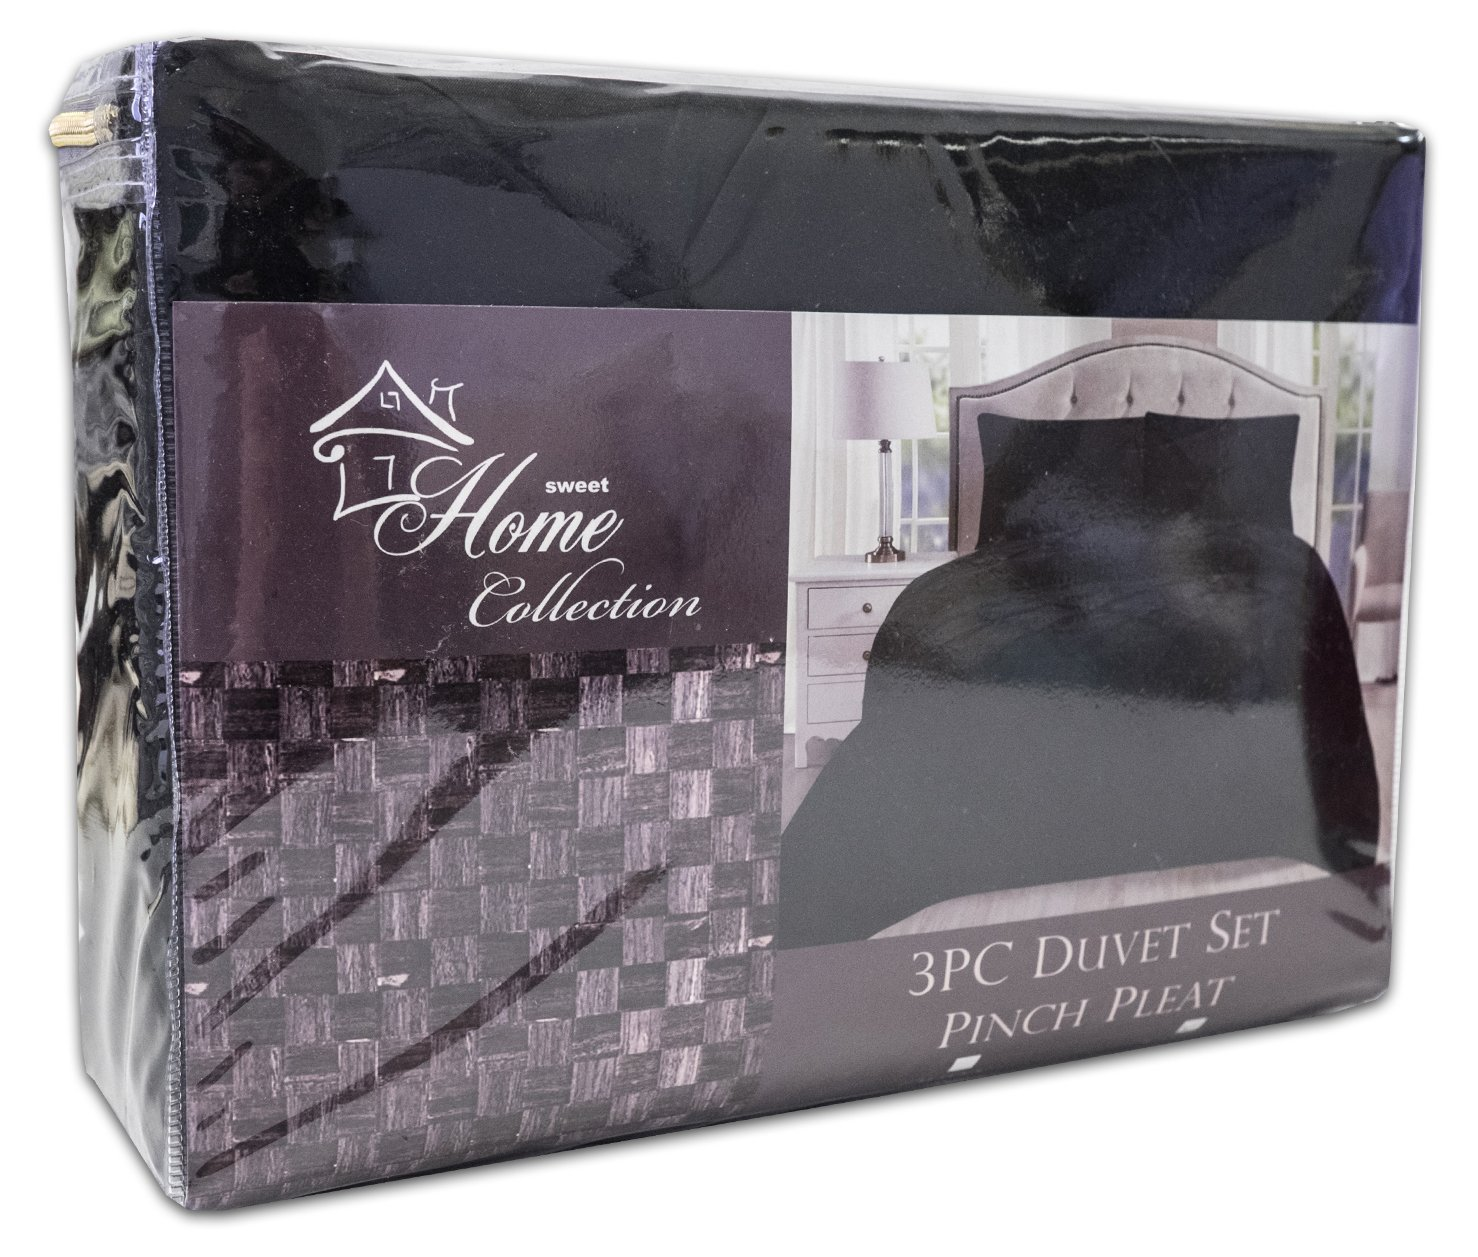 Sweet Home Collection 3 Piece Luxury Pinch Pleat Pintuck Fashion Duvet Set, King, Black